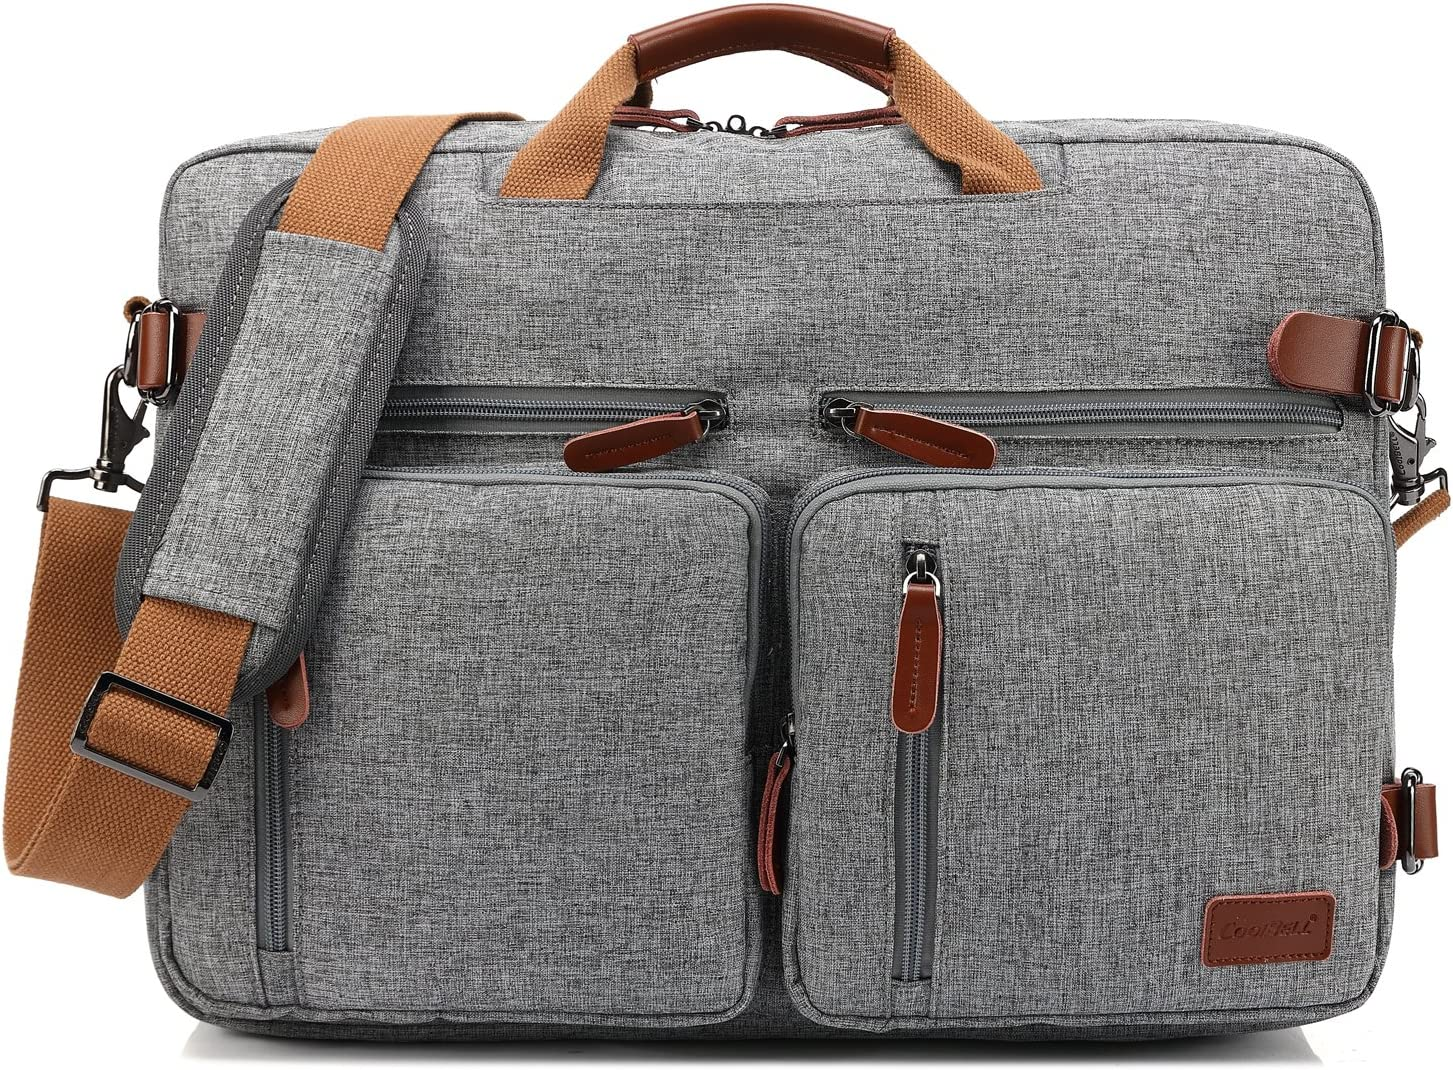 CoolBELL Convertible Backpack Messenger Bag Shoulder Bag Laptop Case Handbag Business Briefcase Multi-Functional Travel Rucksack Fits 15.6 Inch Laptop for Men/Women (Grey)